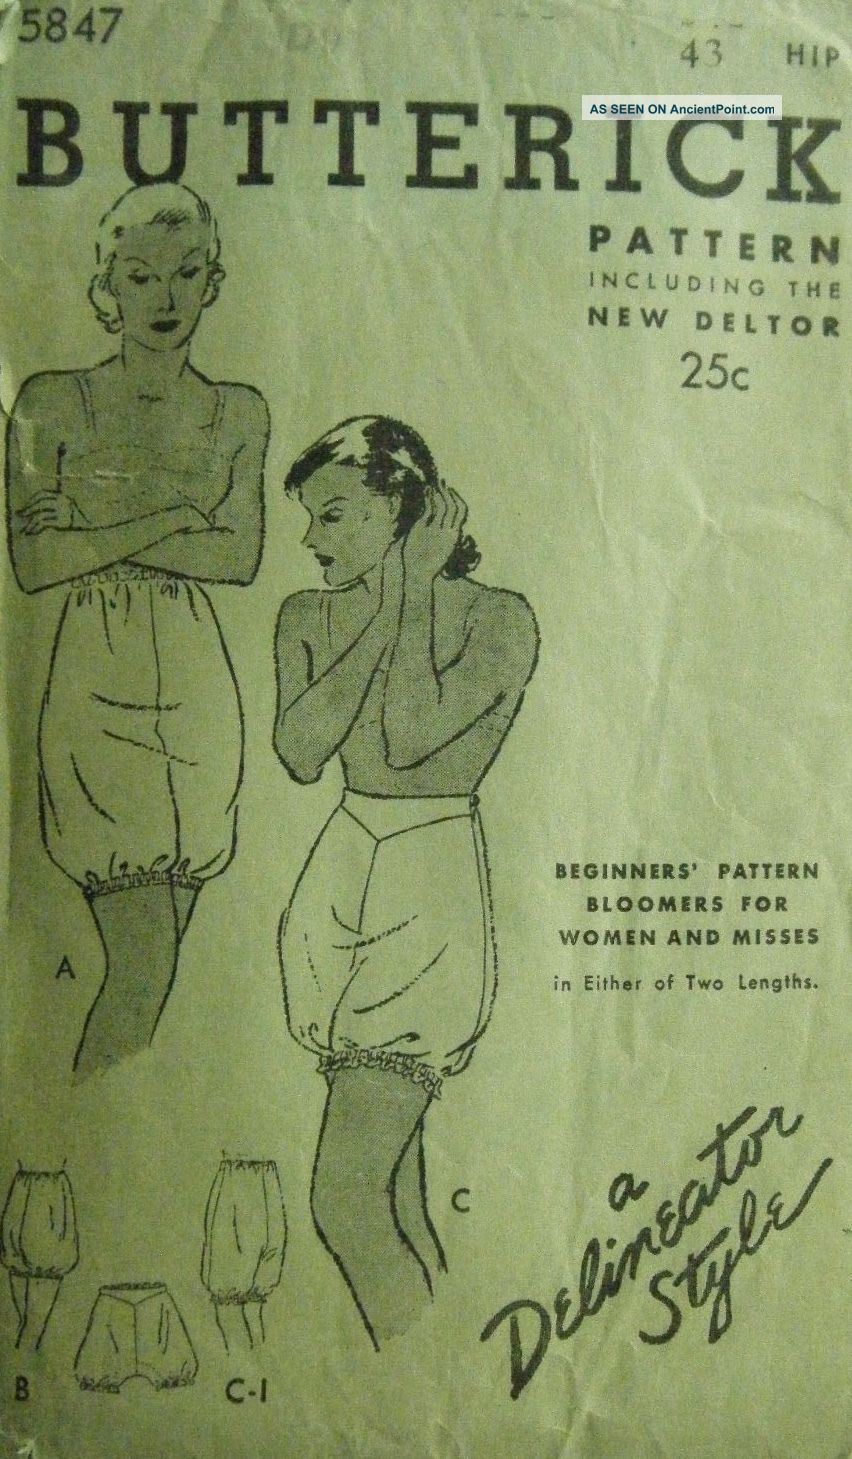 Antique Butterick Delineator Period Women ' S Sewing Pattern Bloomers Other Antique Sewing photo